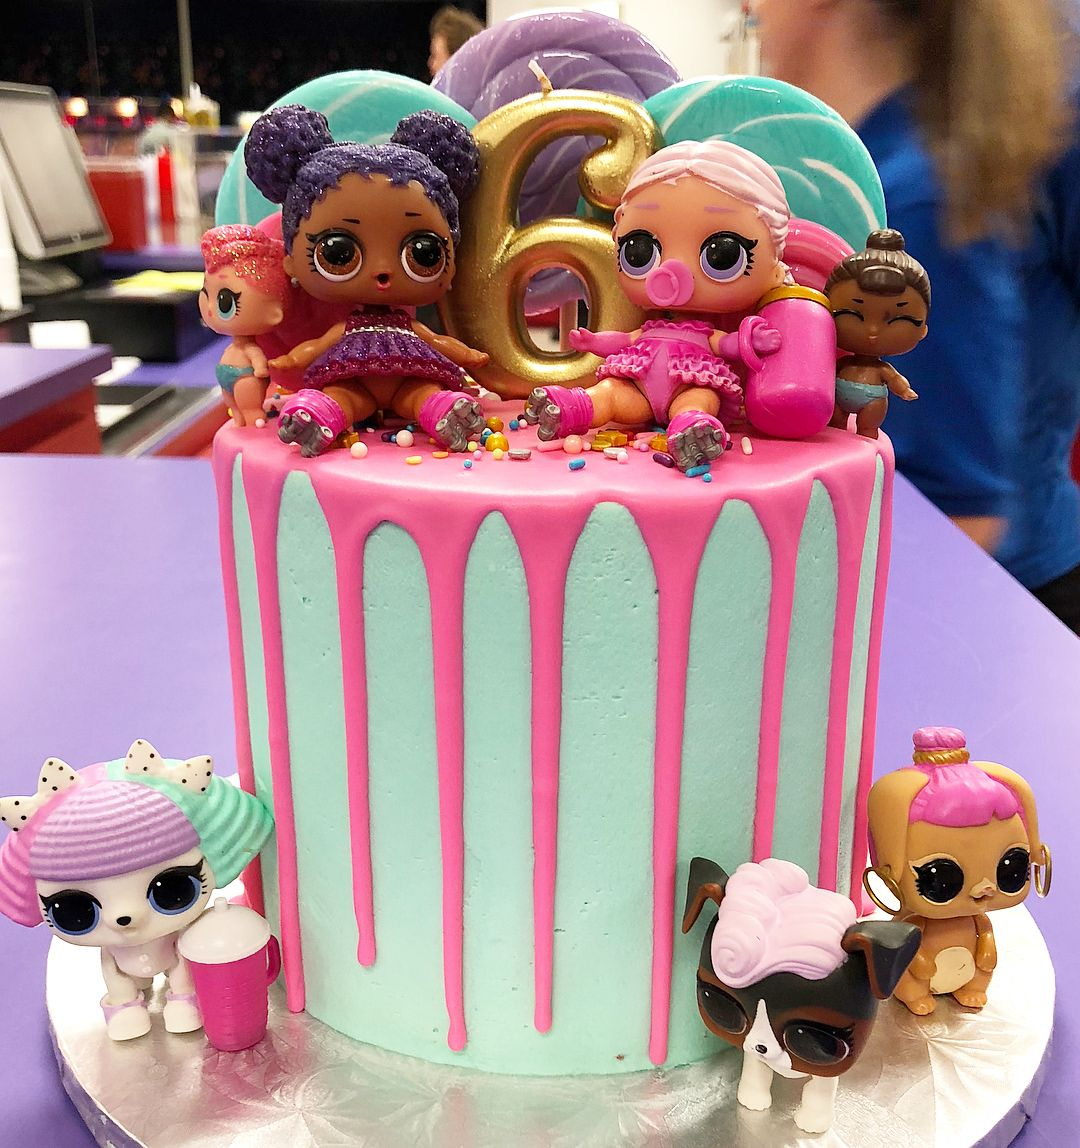 LOL Surprise Doll cake 💖 Funny birthday cakes, Doll